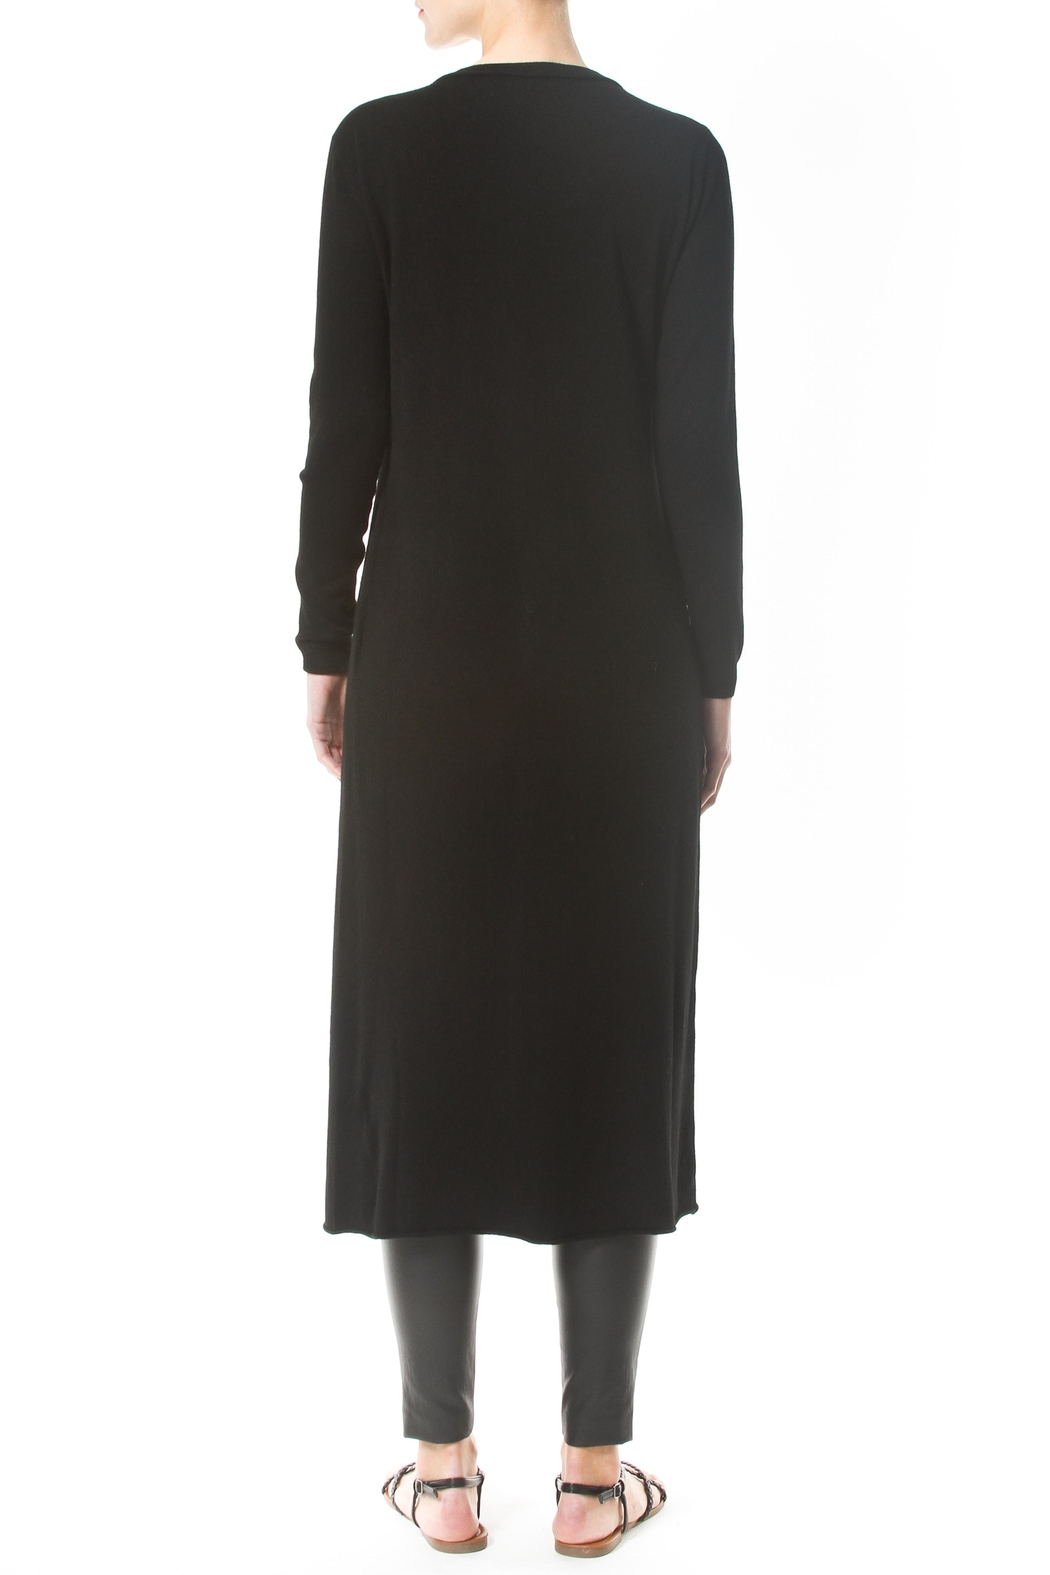 Madonna & Co 2-1 Knit Tunic - Side Cropped Image